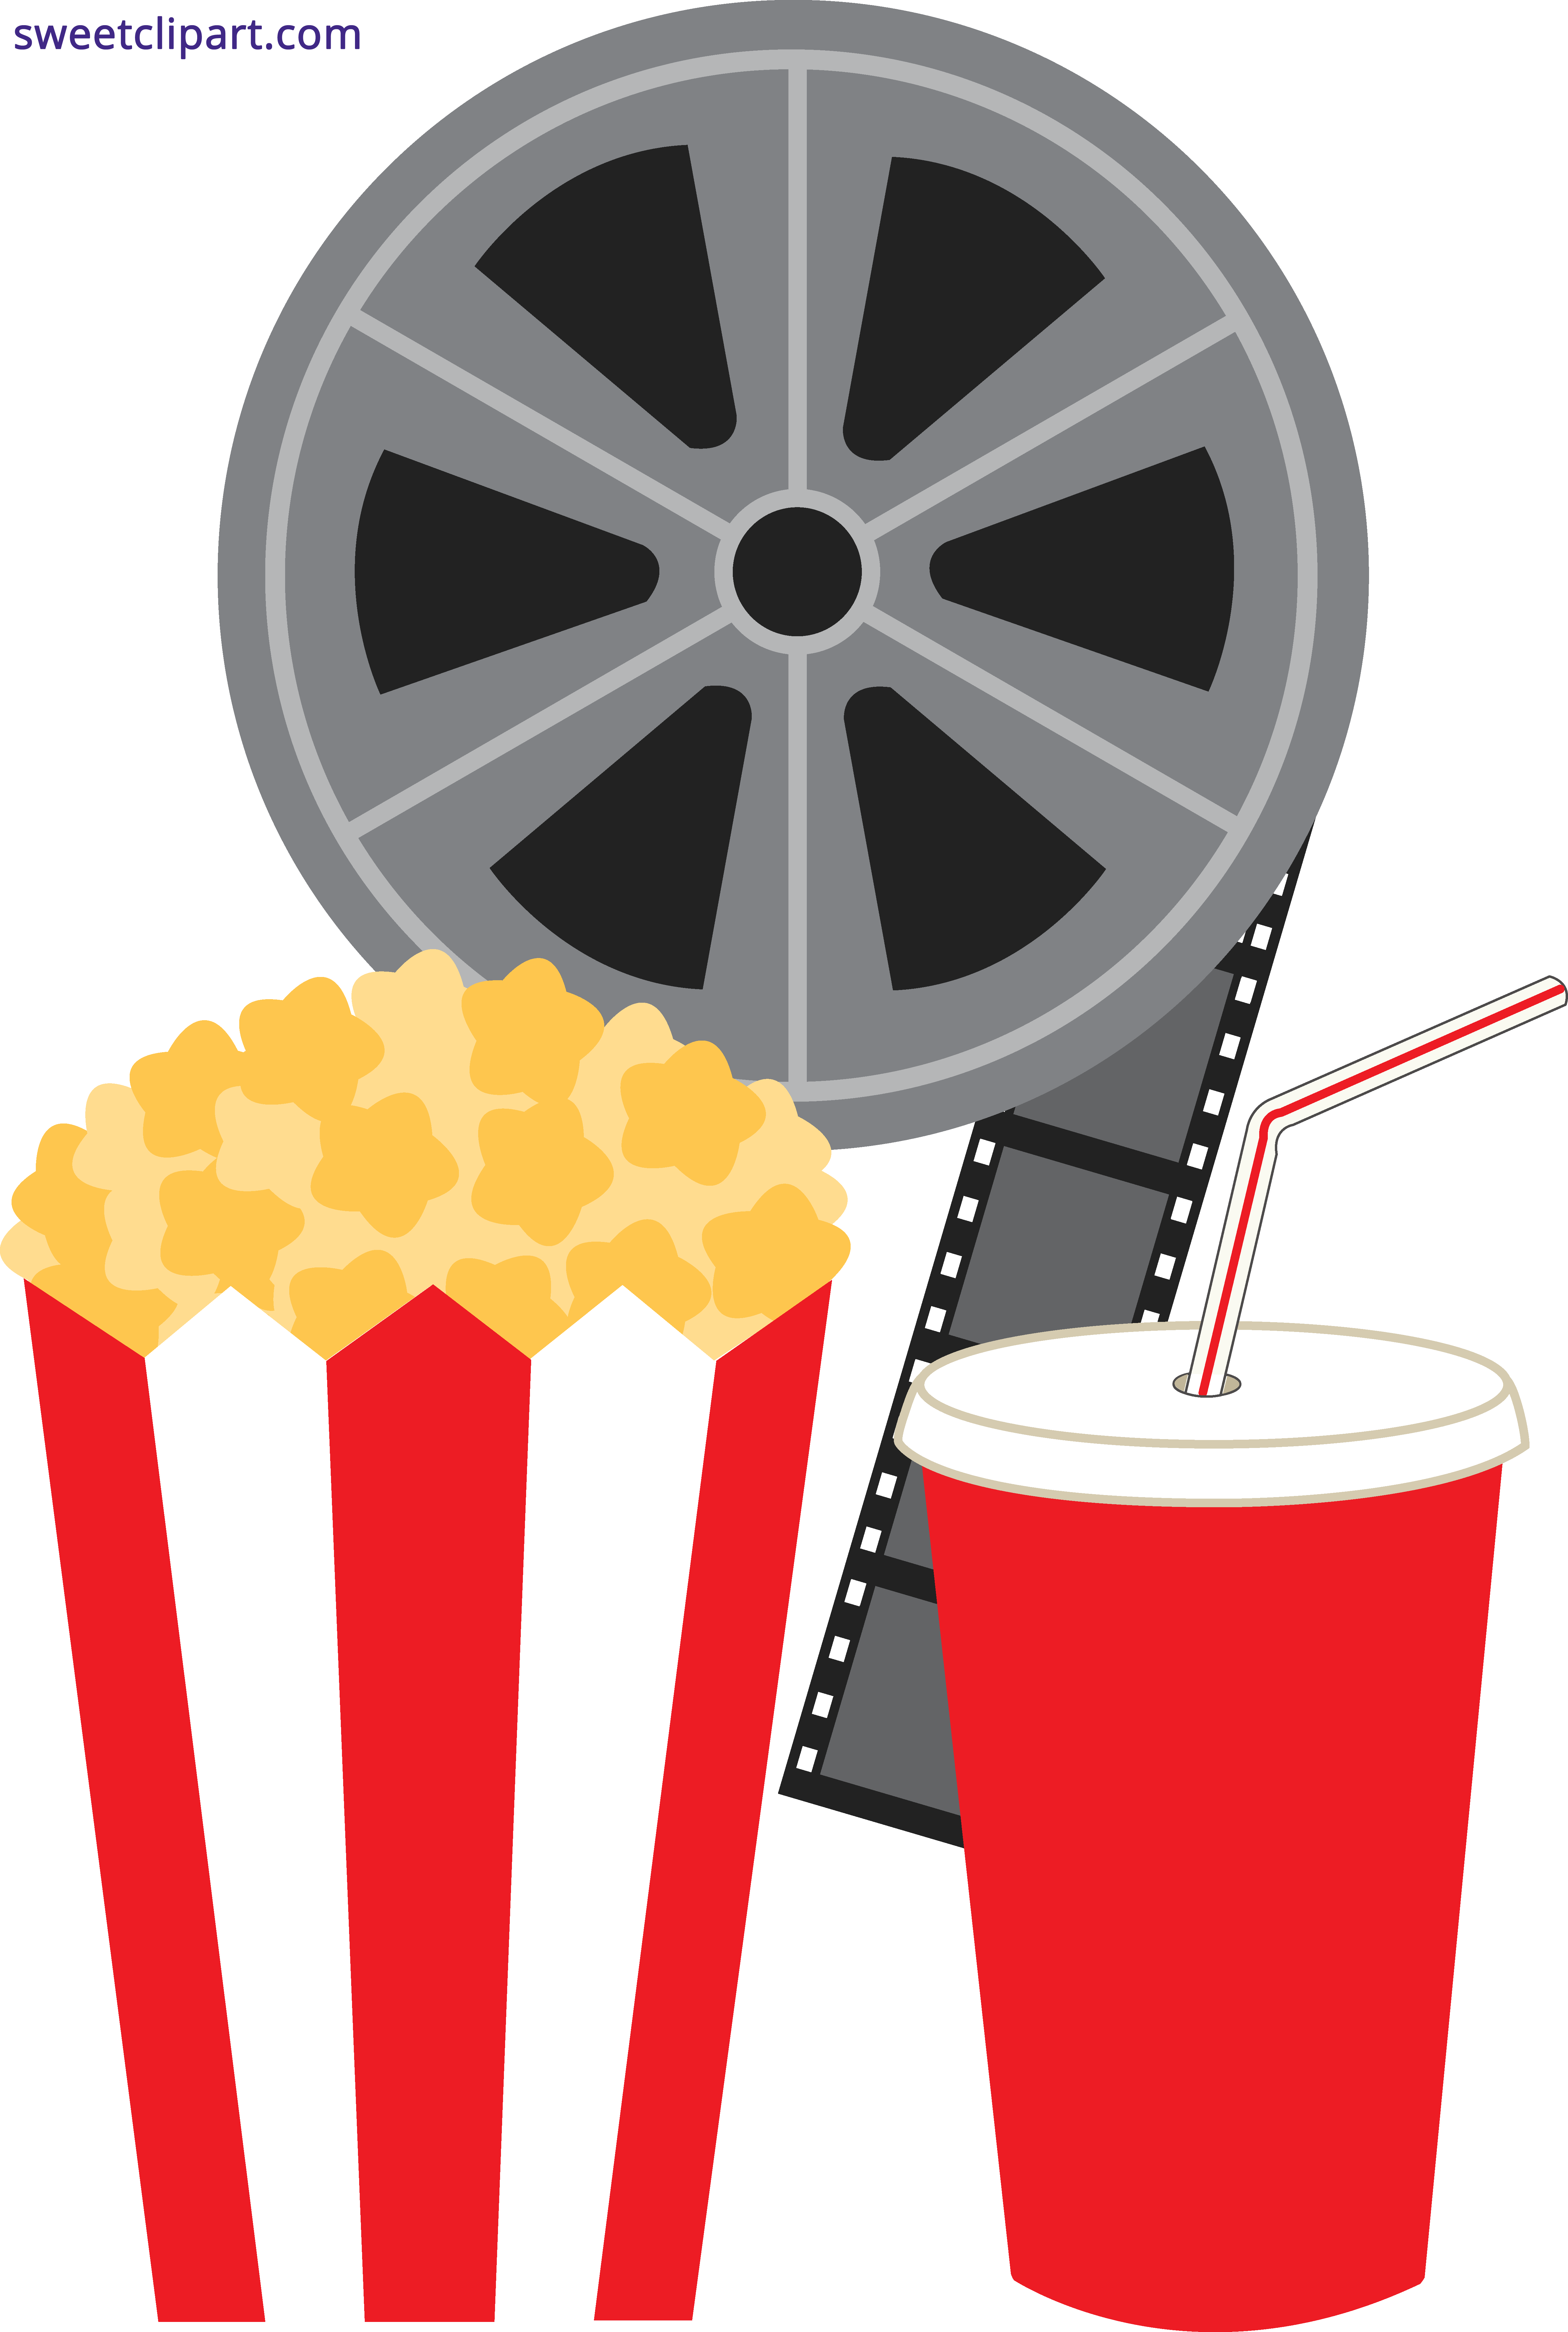 Movie star background clipart graphic library Trolls The Movie Clipart at GetDrawings.com | Free for personal use ... graphic library